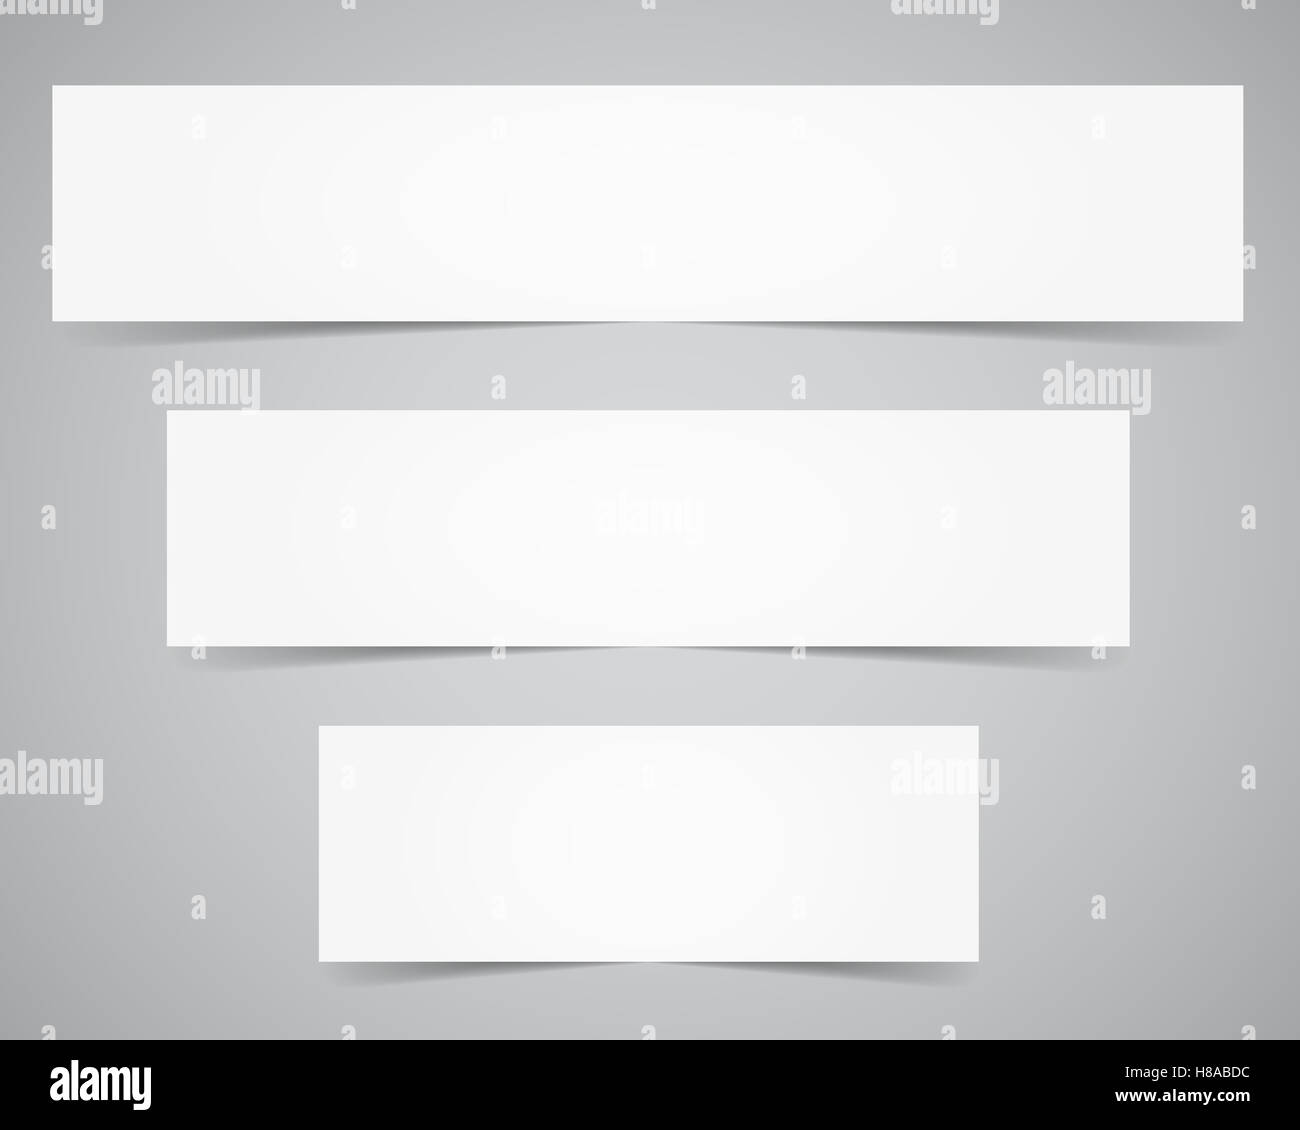 Corporate identity banners template branding letterhead business corporate identity banners template branding letterhead business identity kit paper edition place your design text easily spiritdancerdesigns Image collections